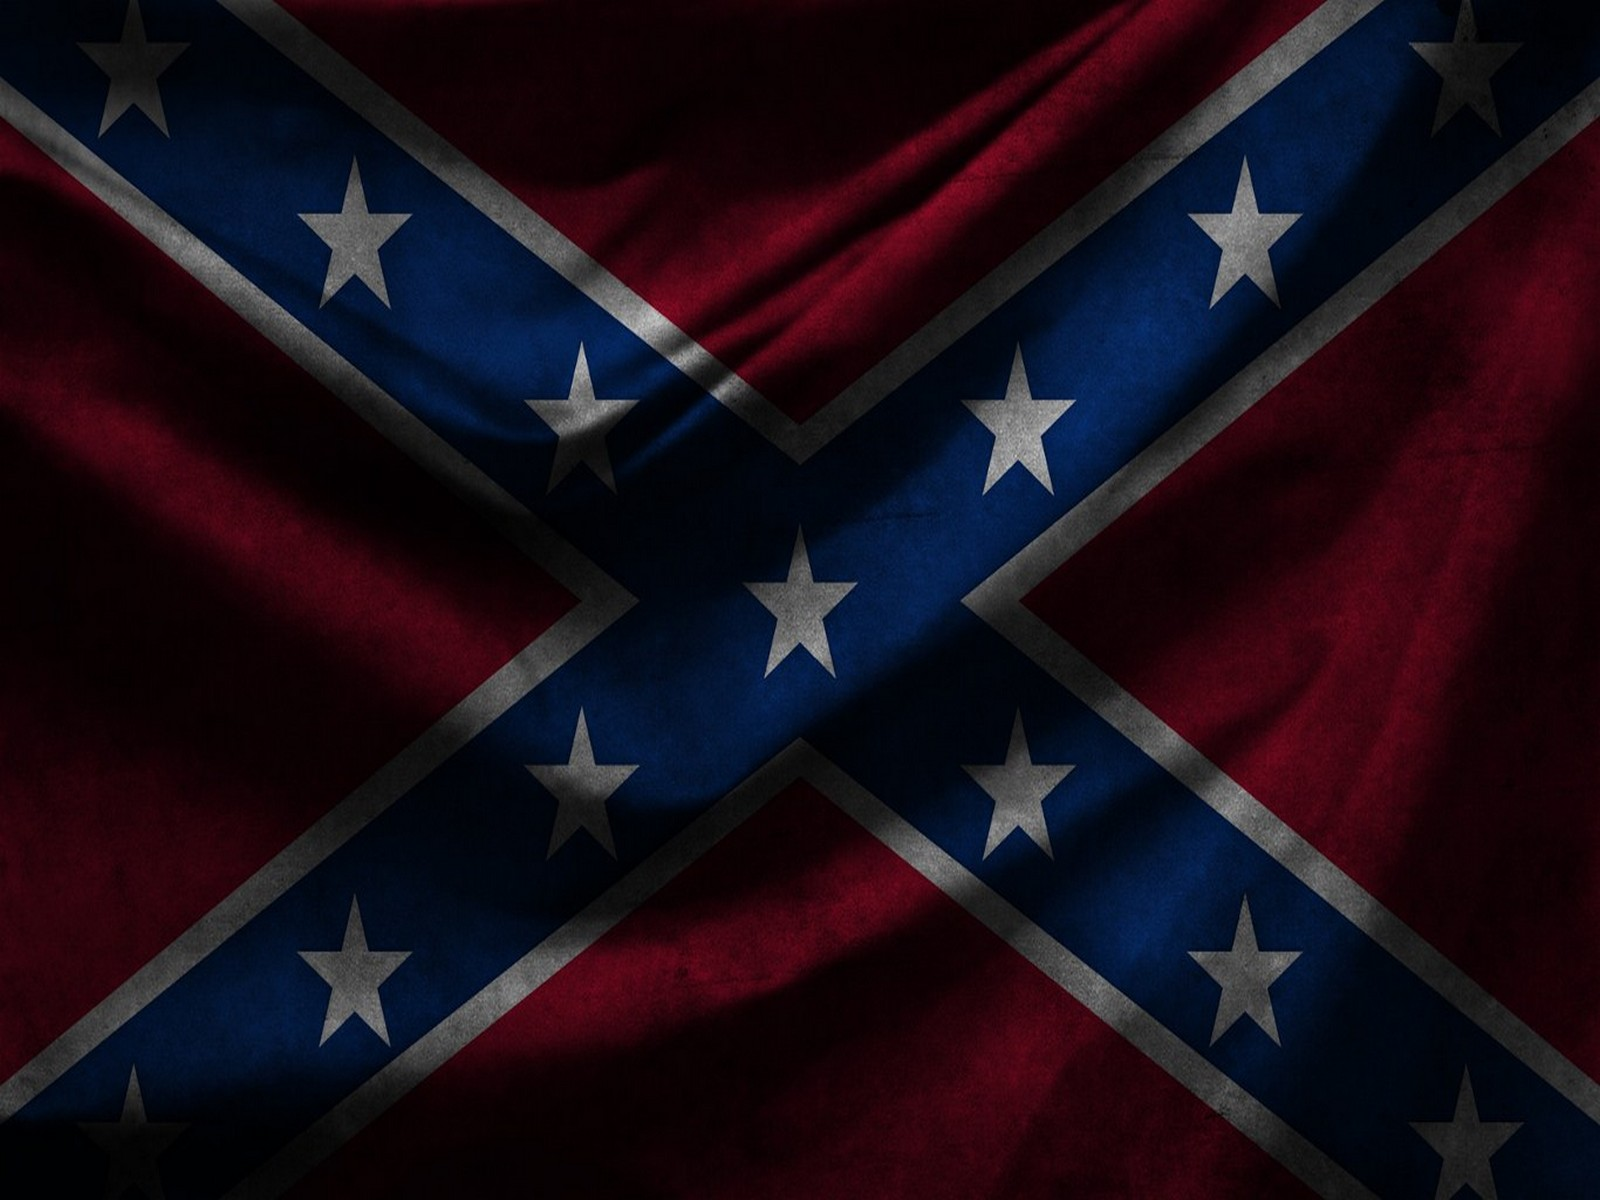 Coders Flags Fan Club Wallpaper Abyss Misc Flag Of The Confederate 1600x1200